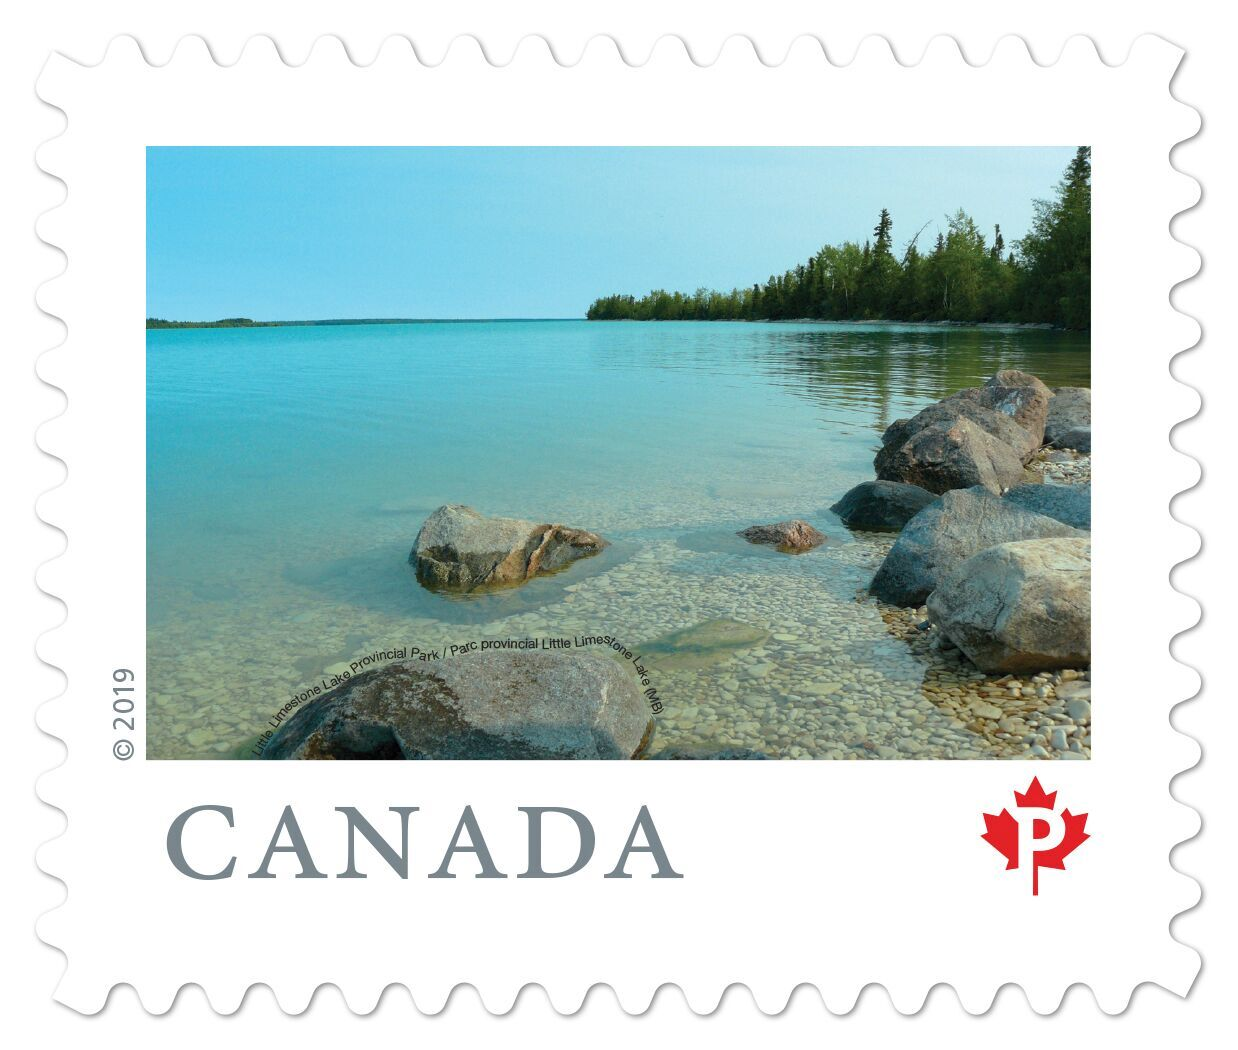 Canada - From Far and Wide (January 14, 2019) Little Limestone Lake Provincial Park, Manitoba (domestic P rate from booklet of 10)